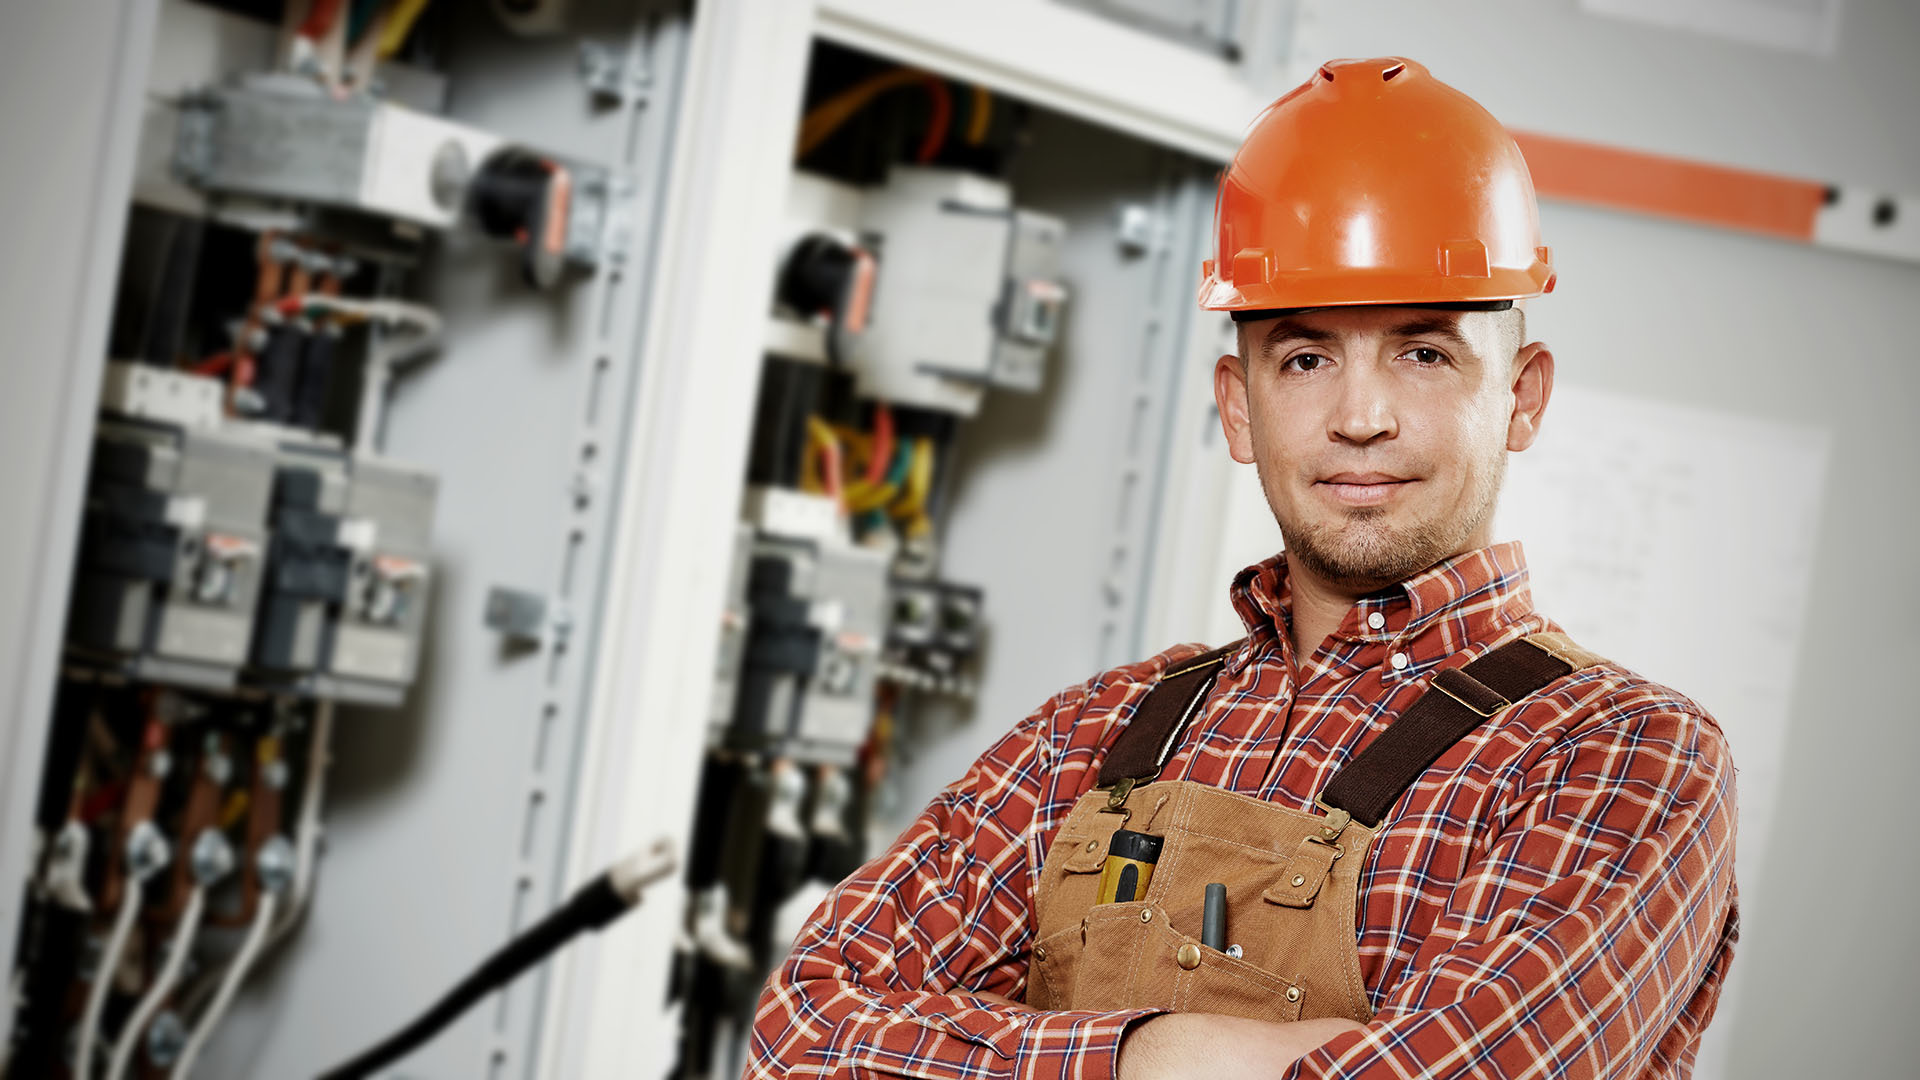 Top Electrician Jobs